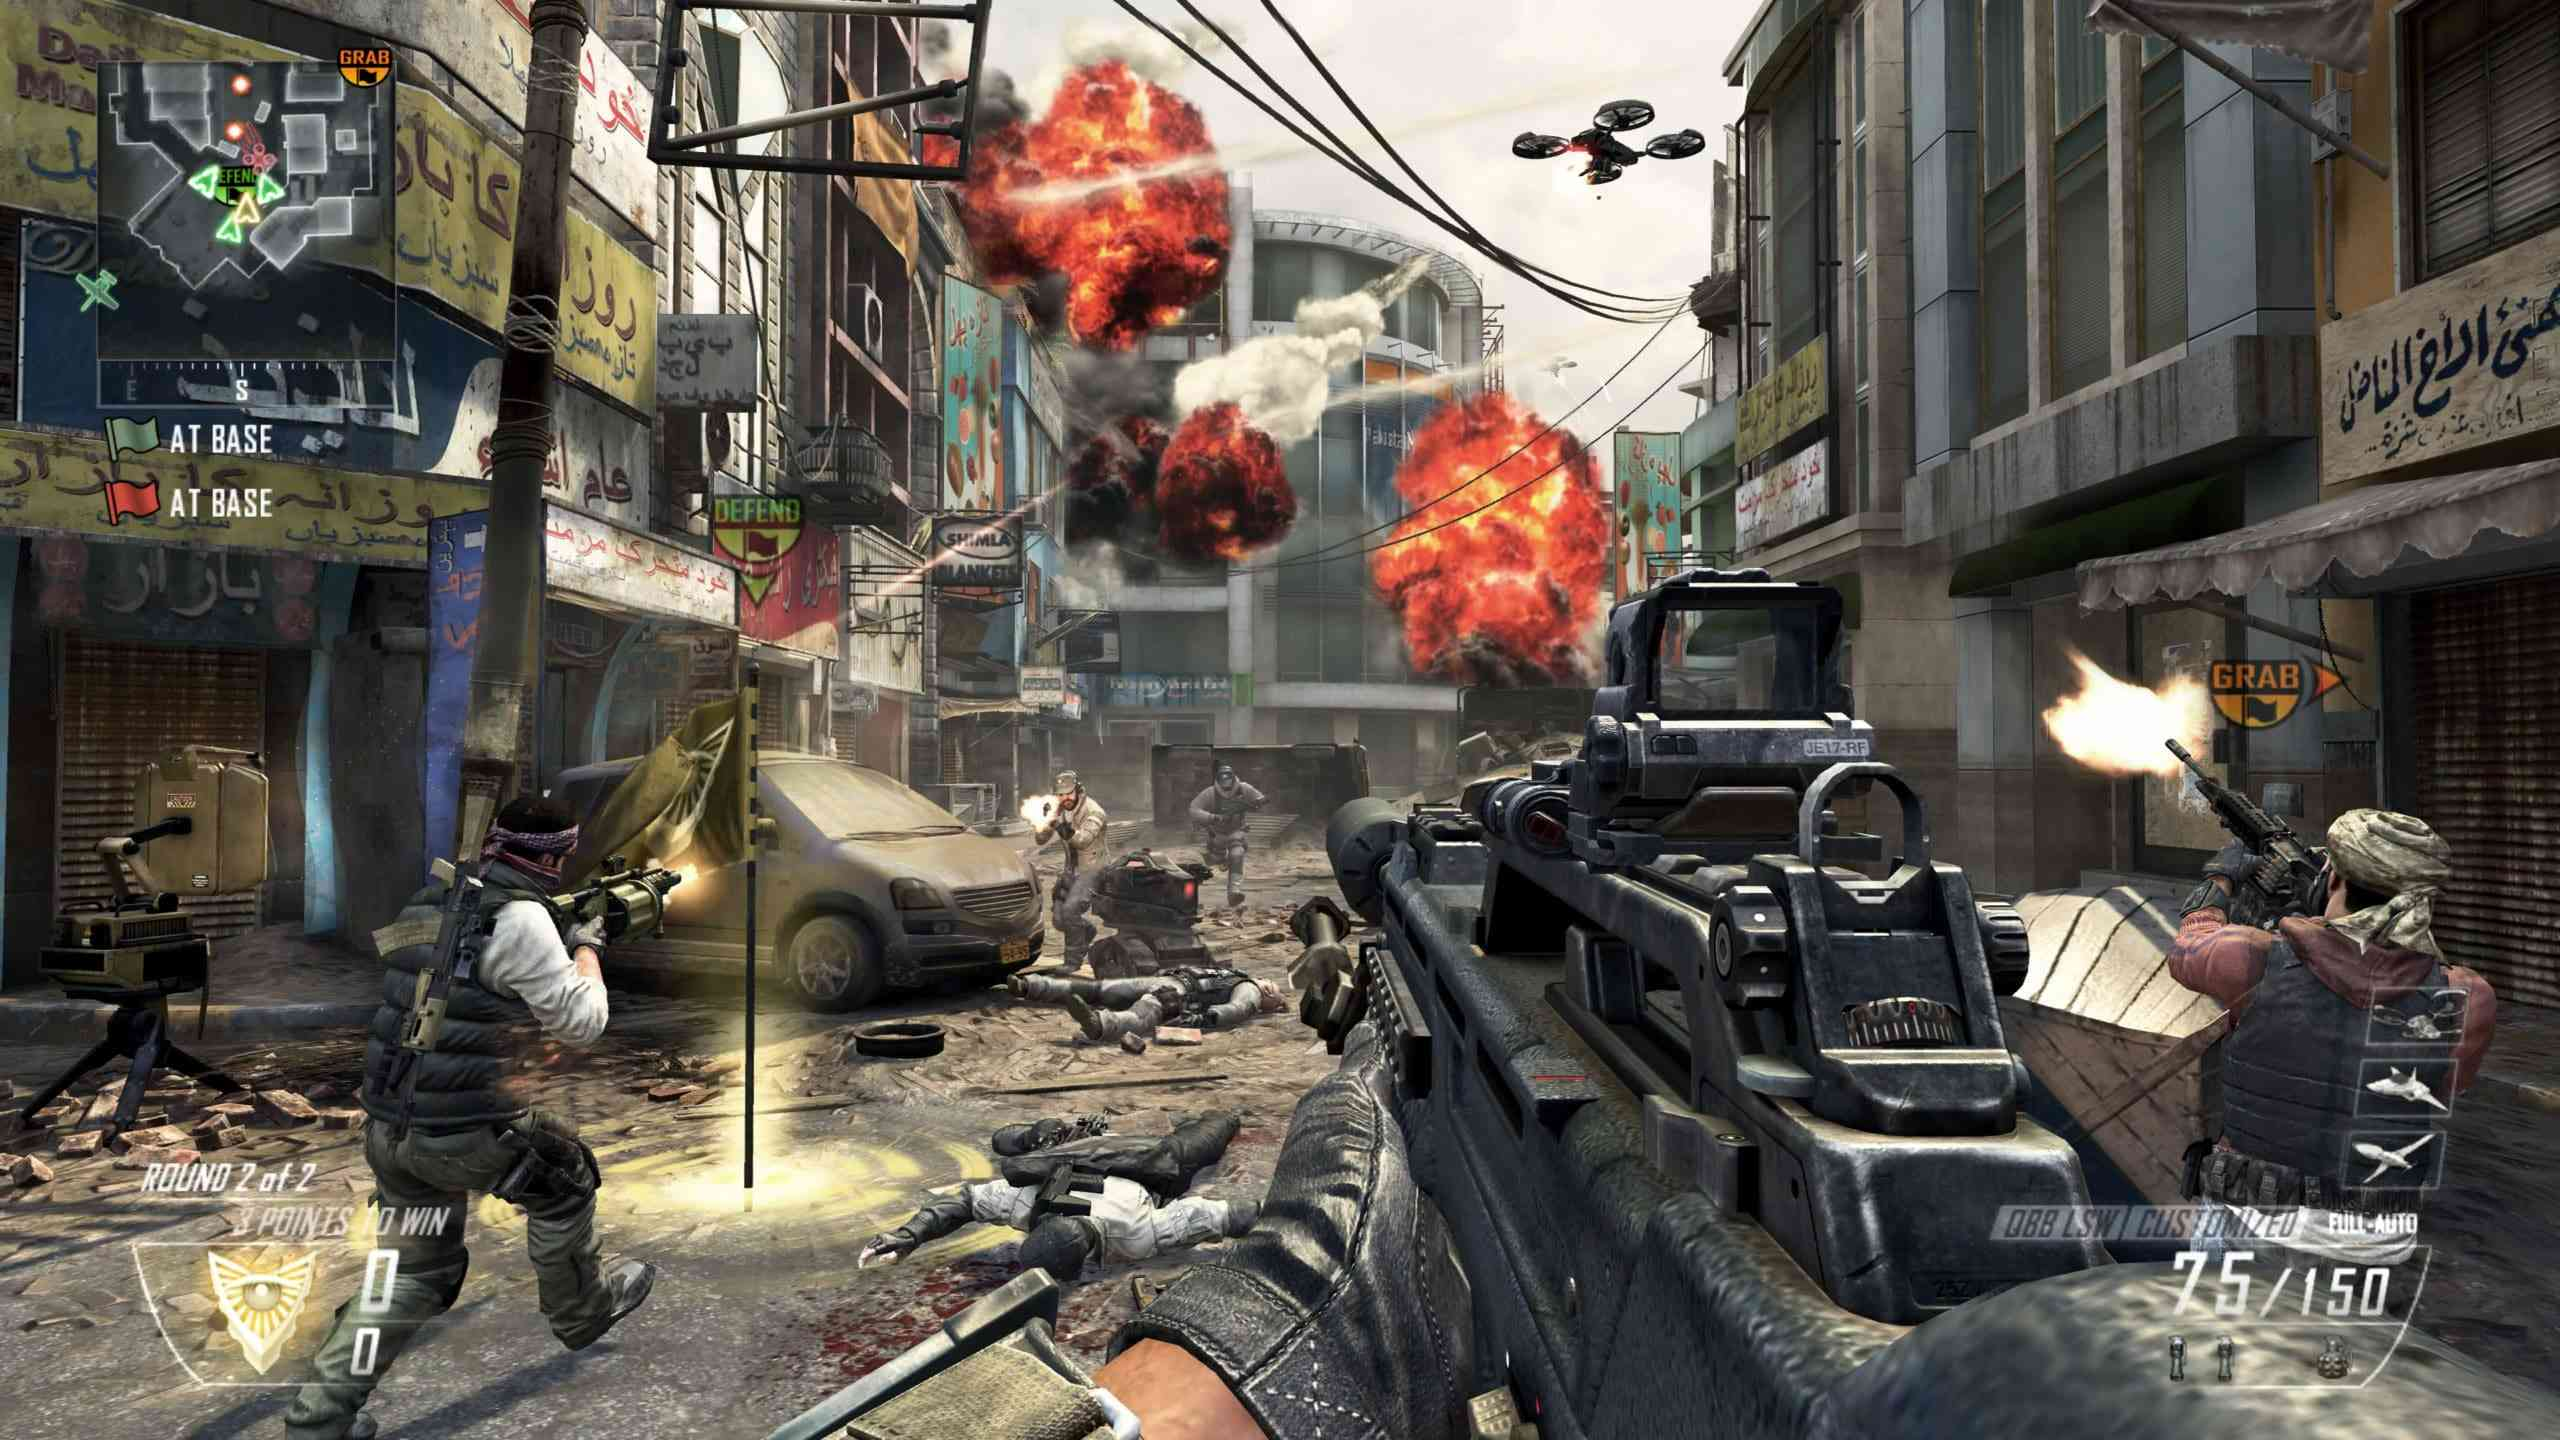 how to turn off graphic content in black ops 2